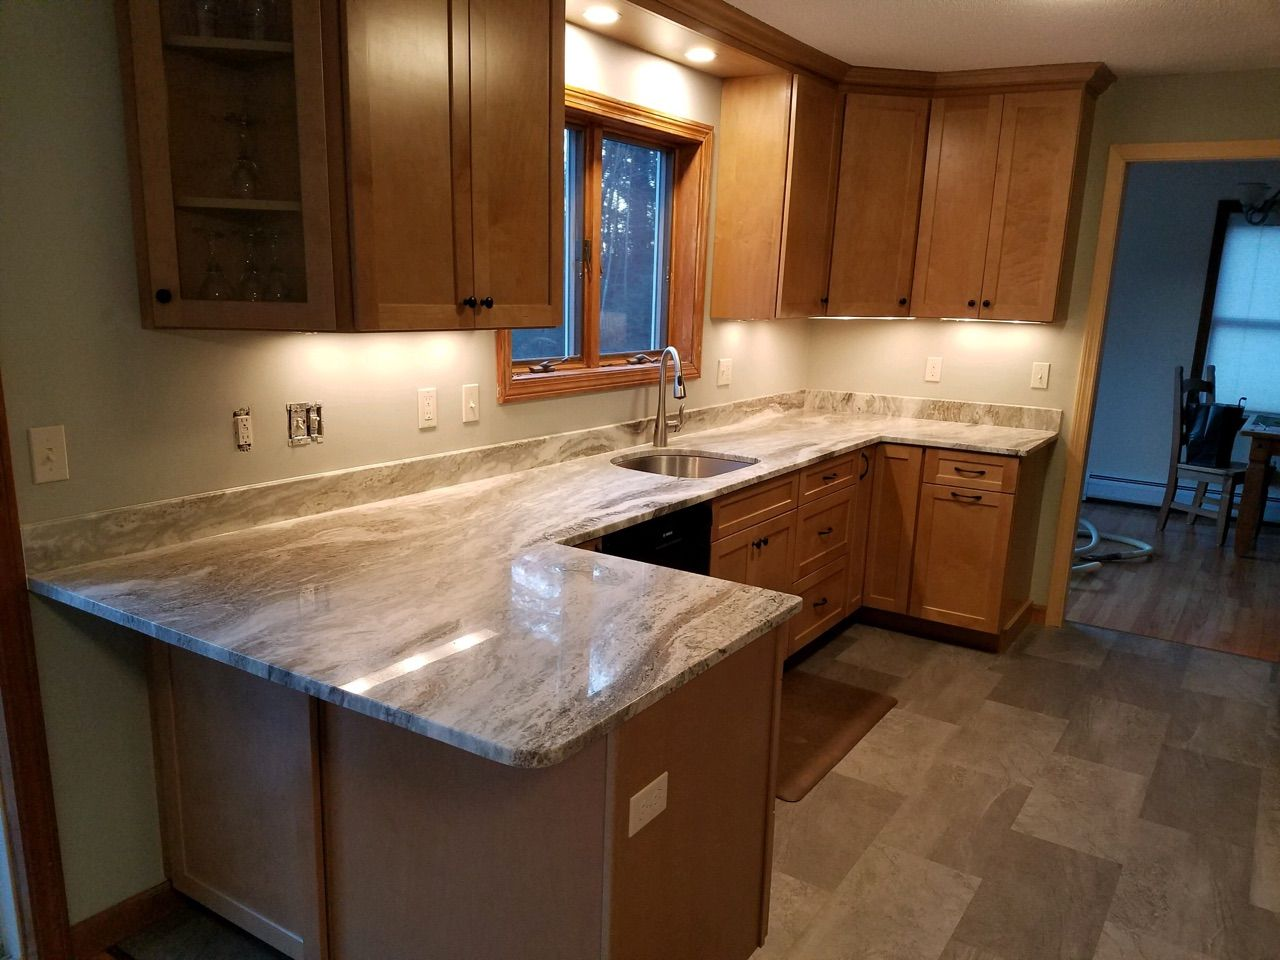 Brown Fantasy Granite Counter Top Waypoint Cabinets In Maple